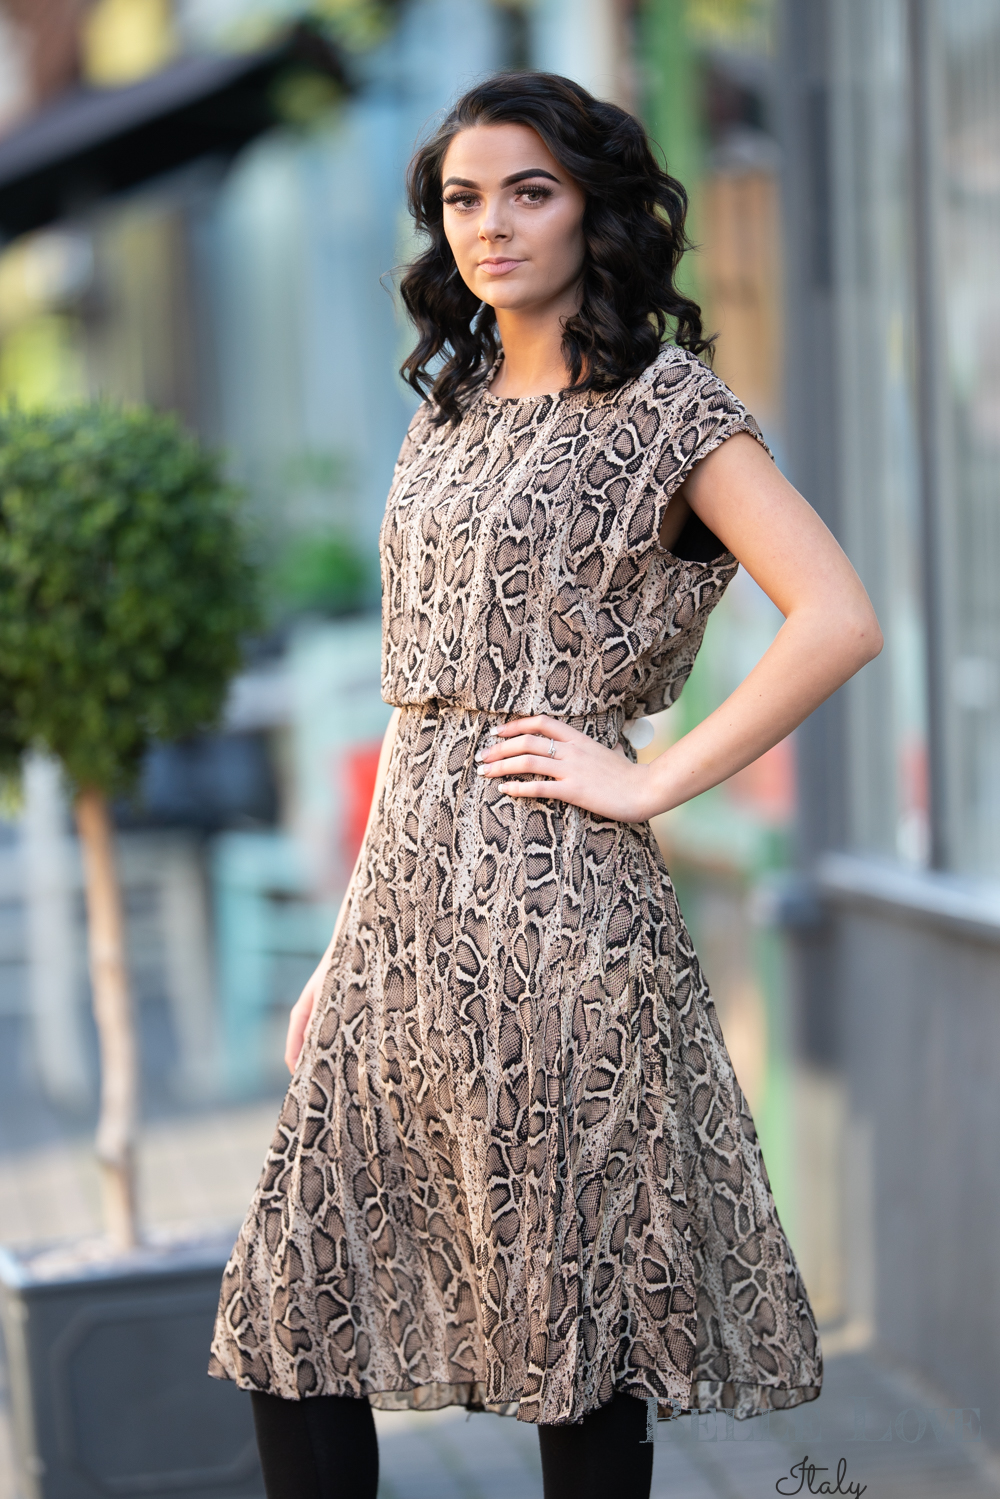 Belle Love Italy Snakeskin Print Dress